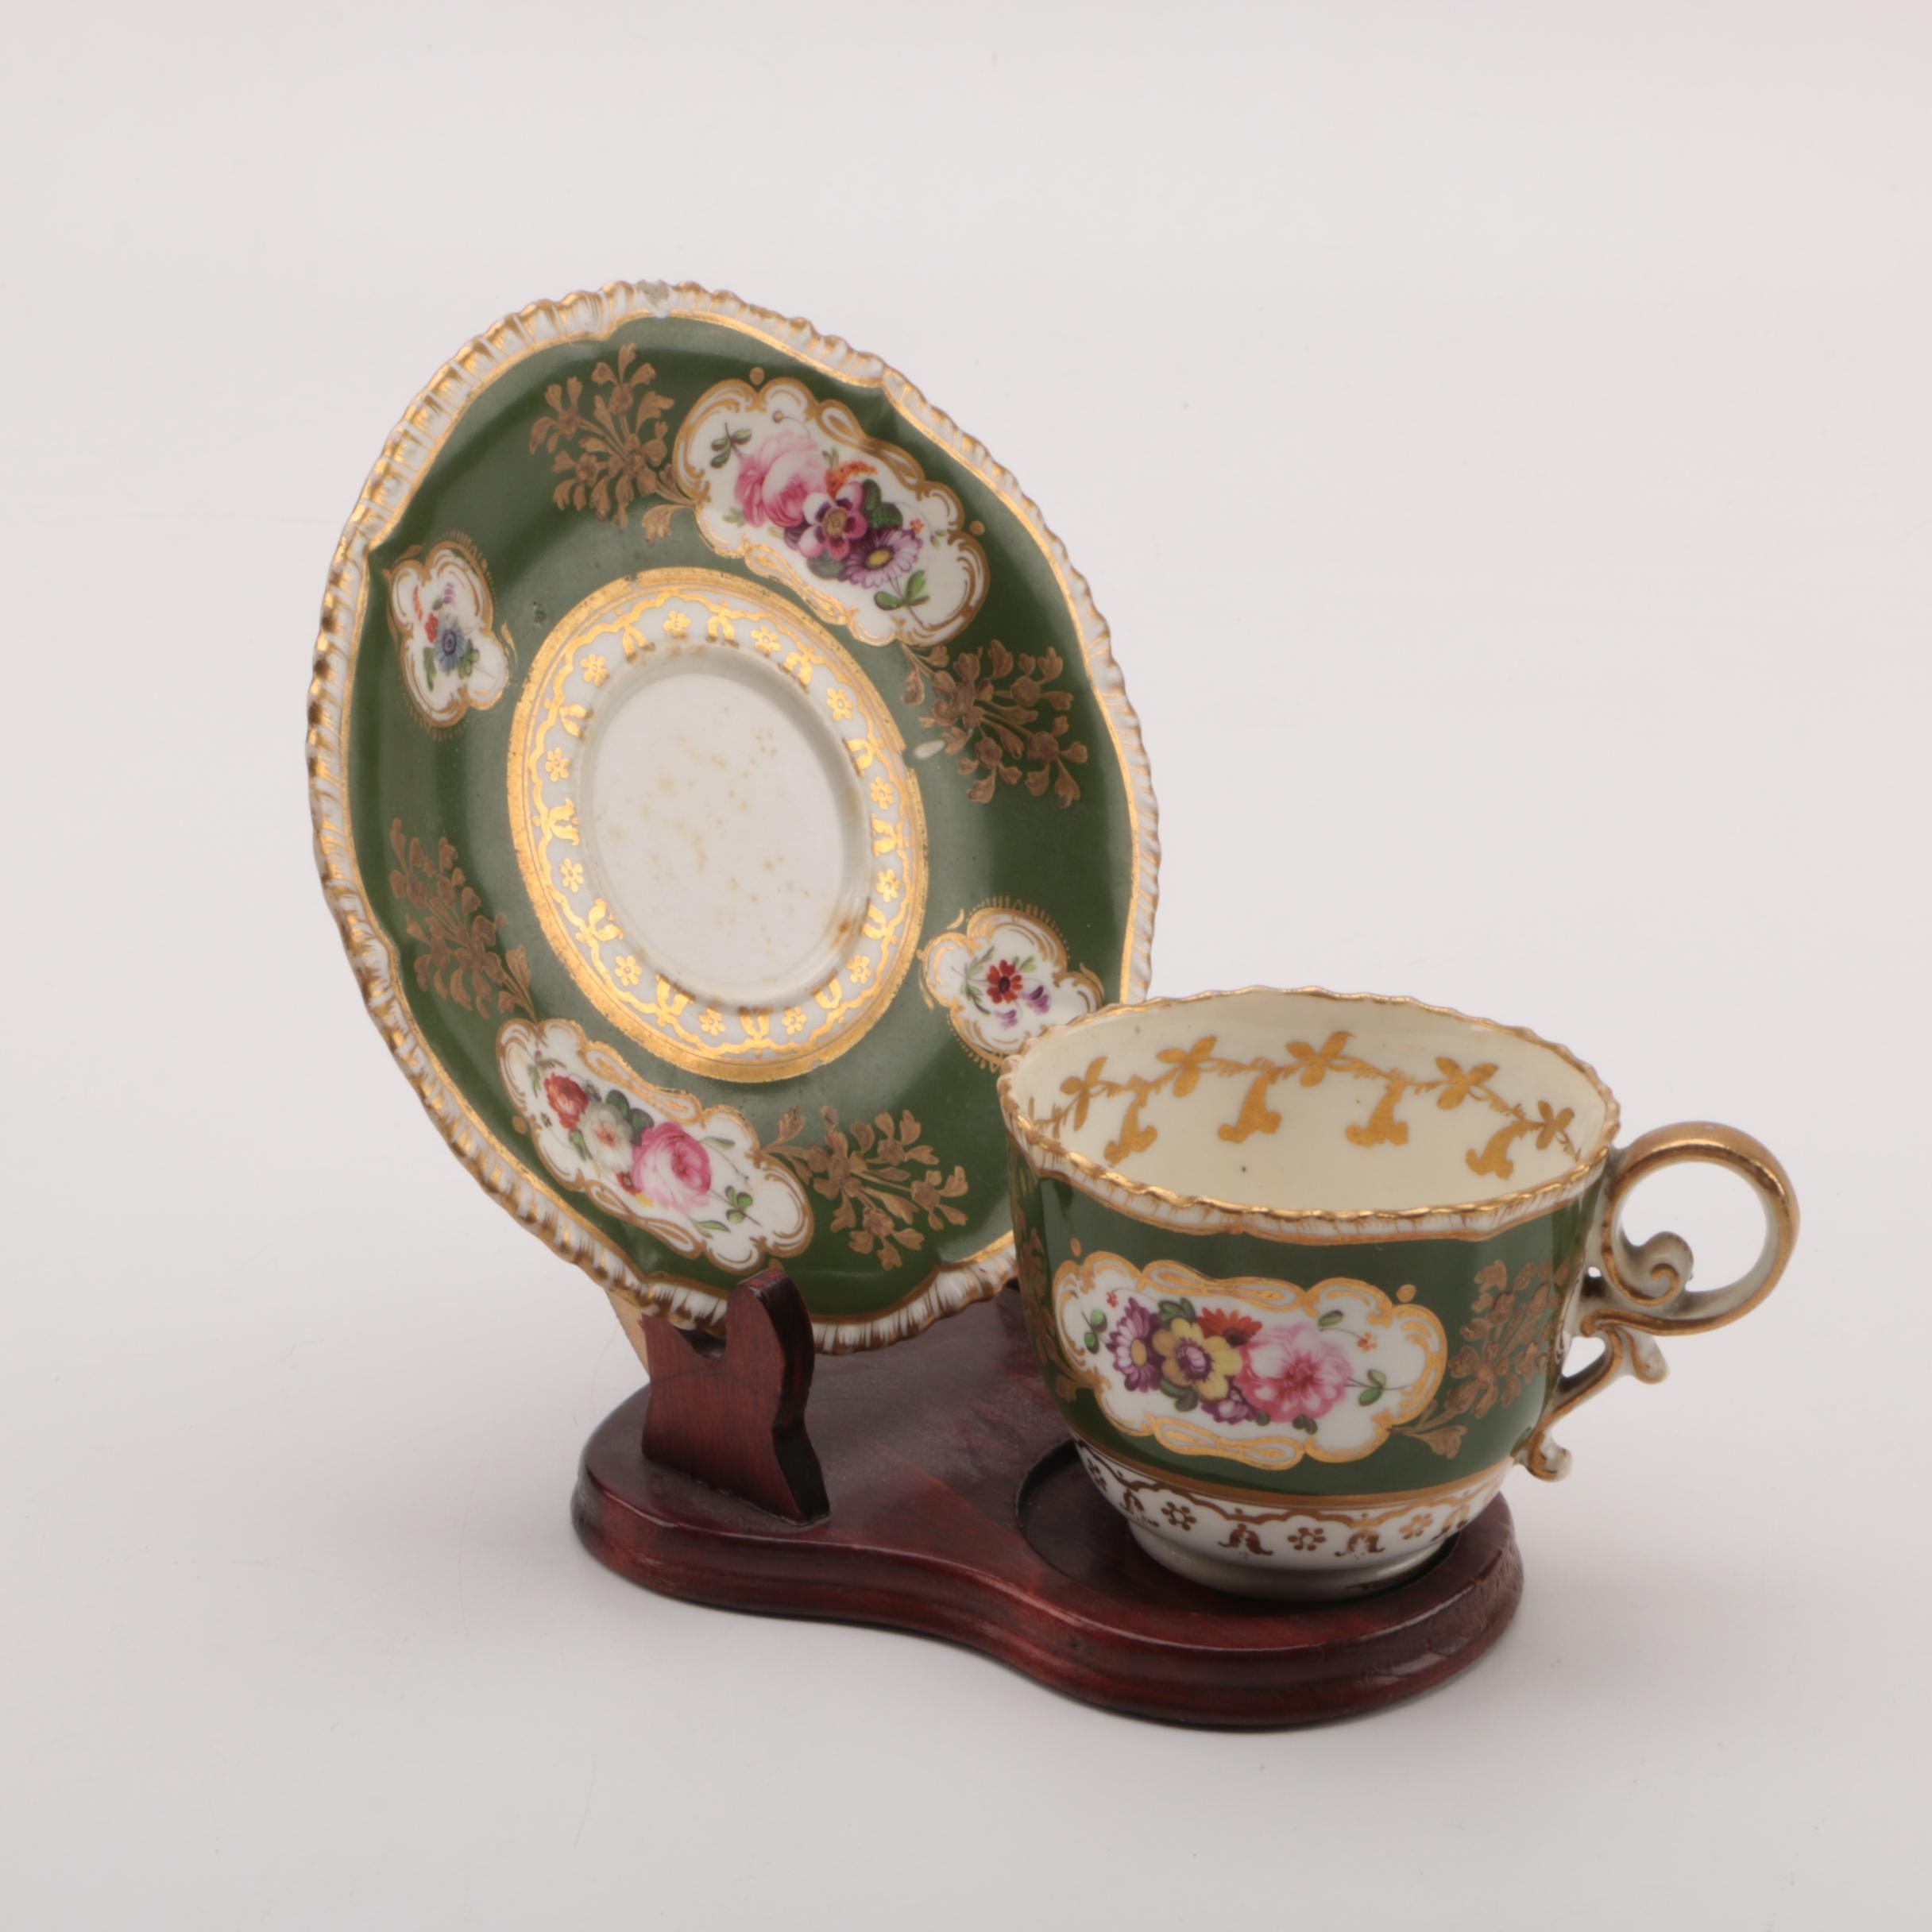 Antique English Porcelain Teacup and Saucer